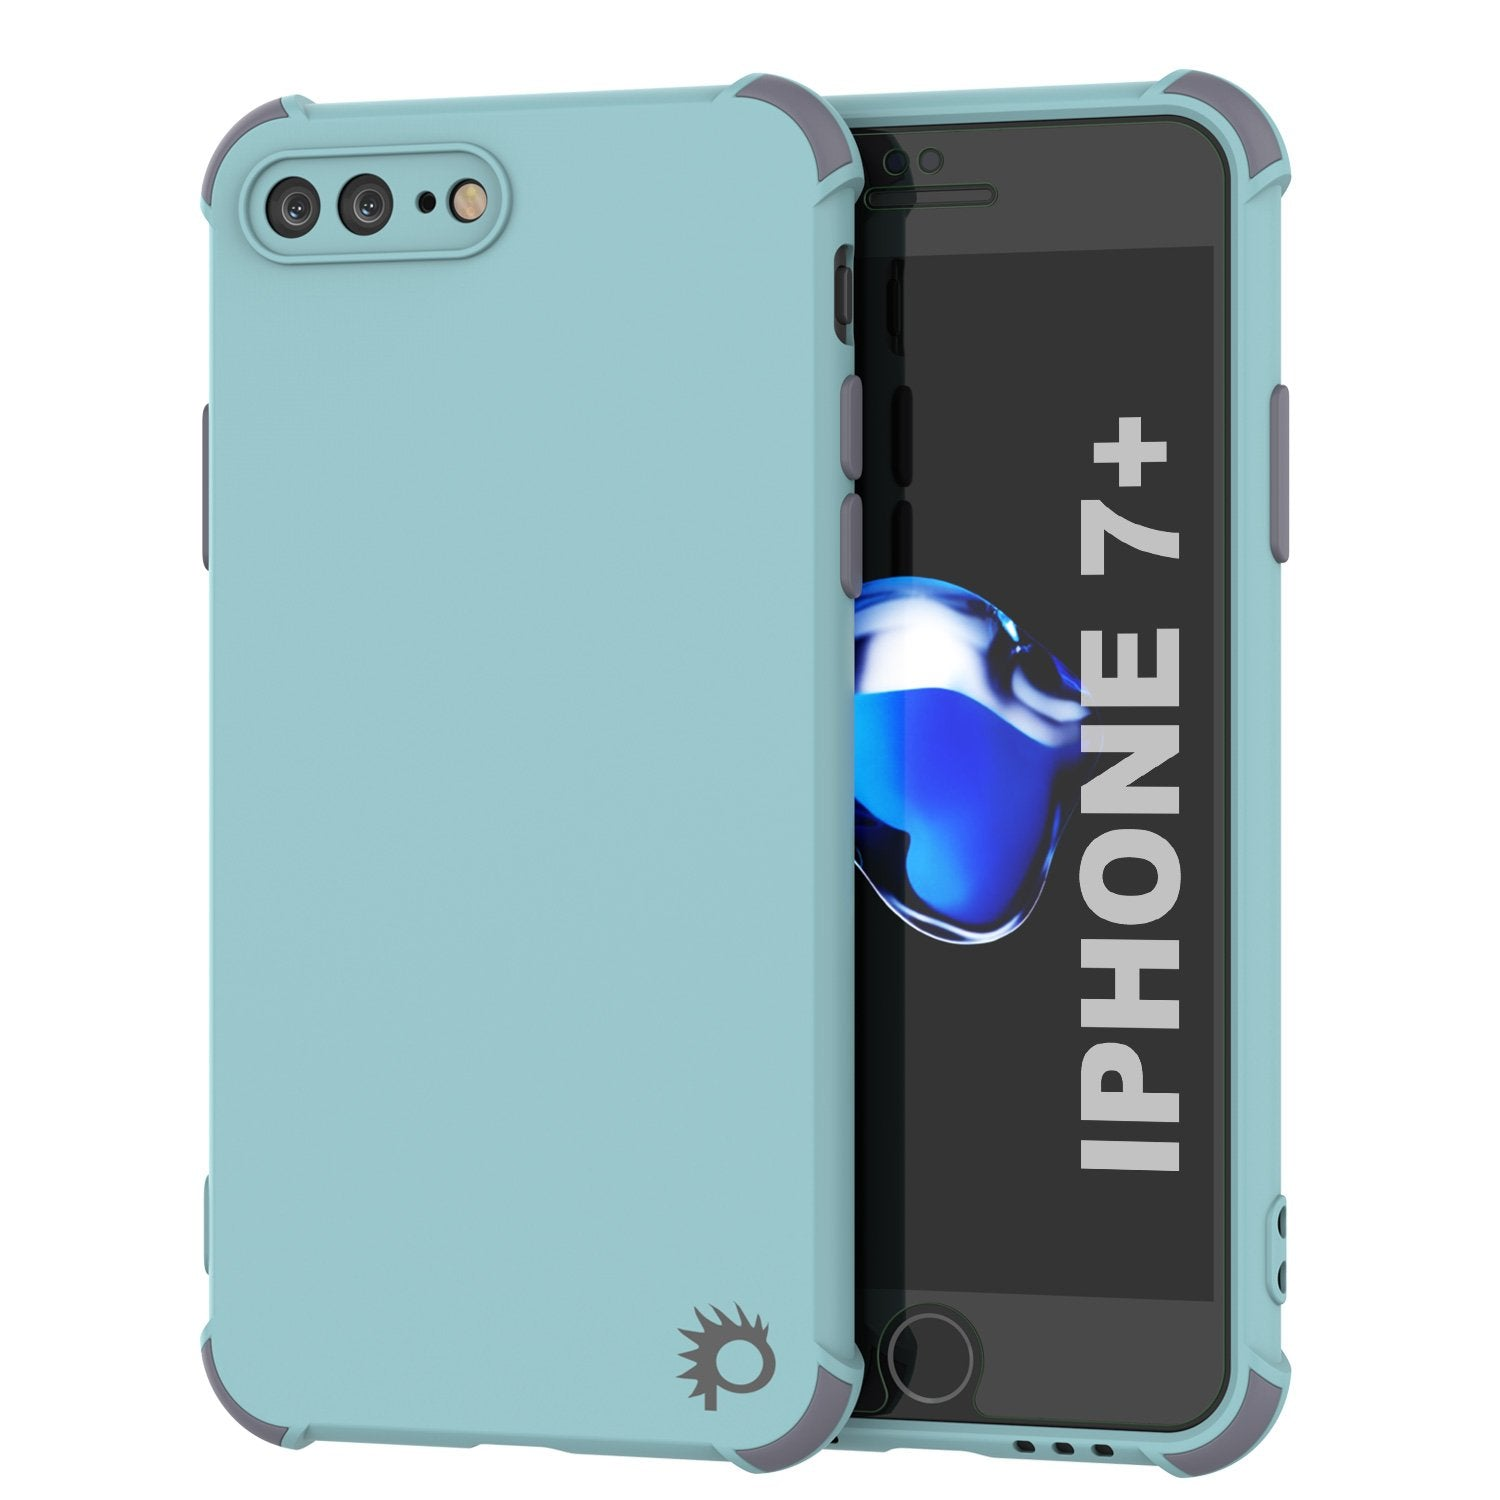 Punkcase Protective & Lightweight TPU Case [Sunshine Series] for iPhone 7+ Plus [Teal]